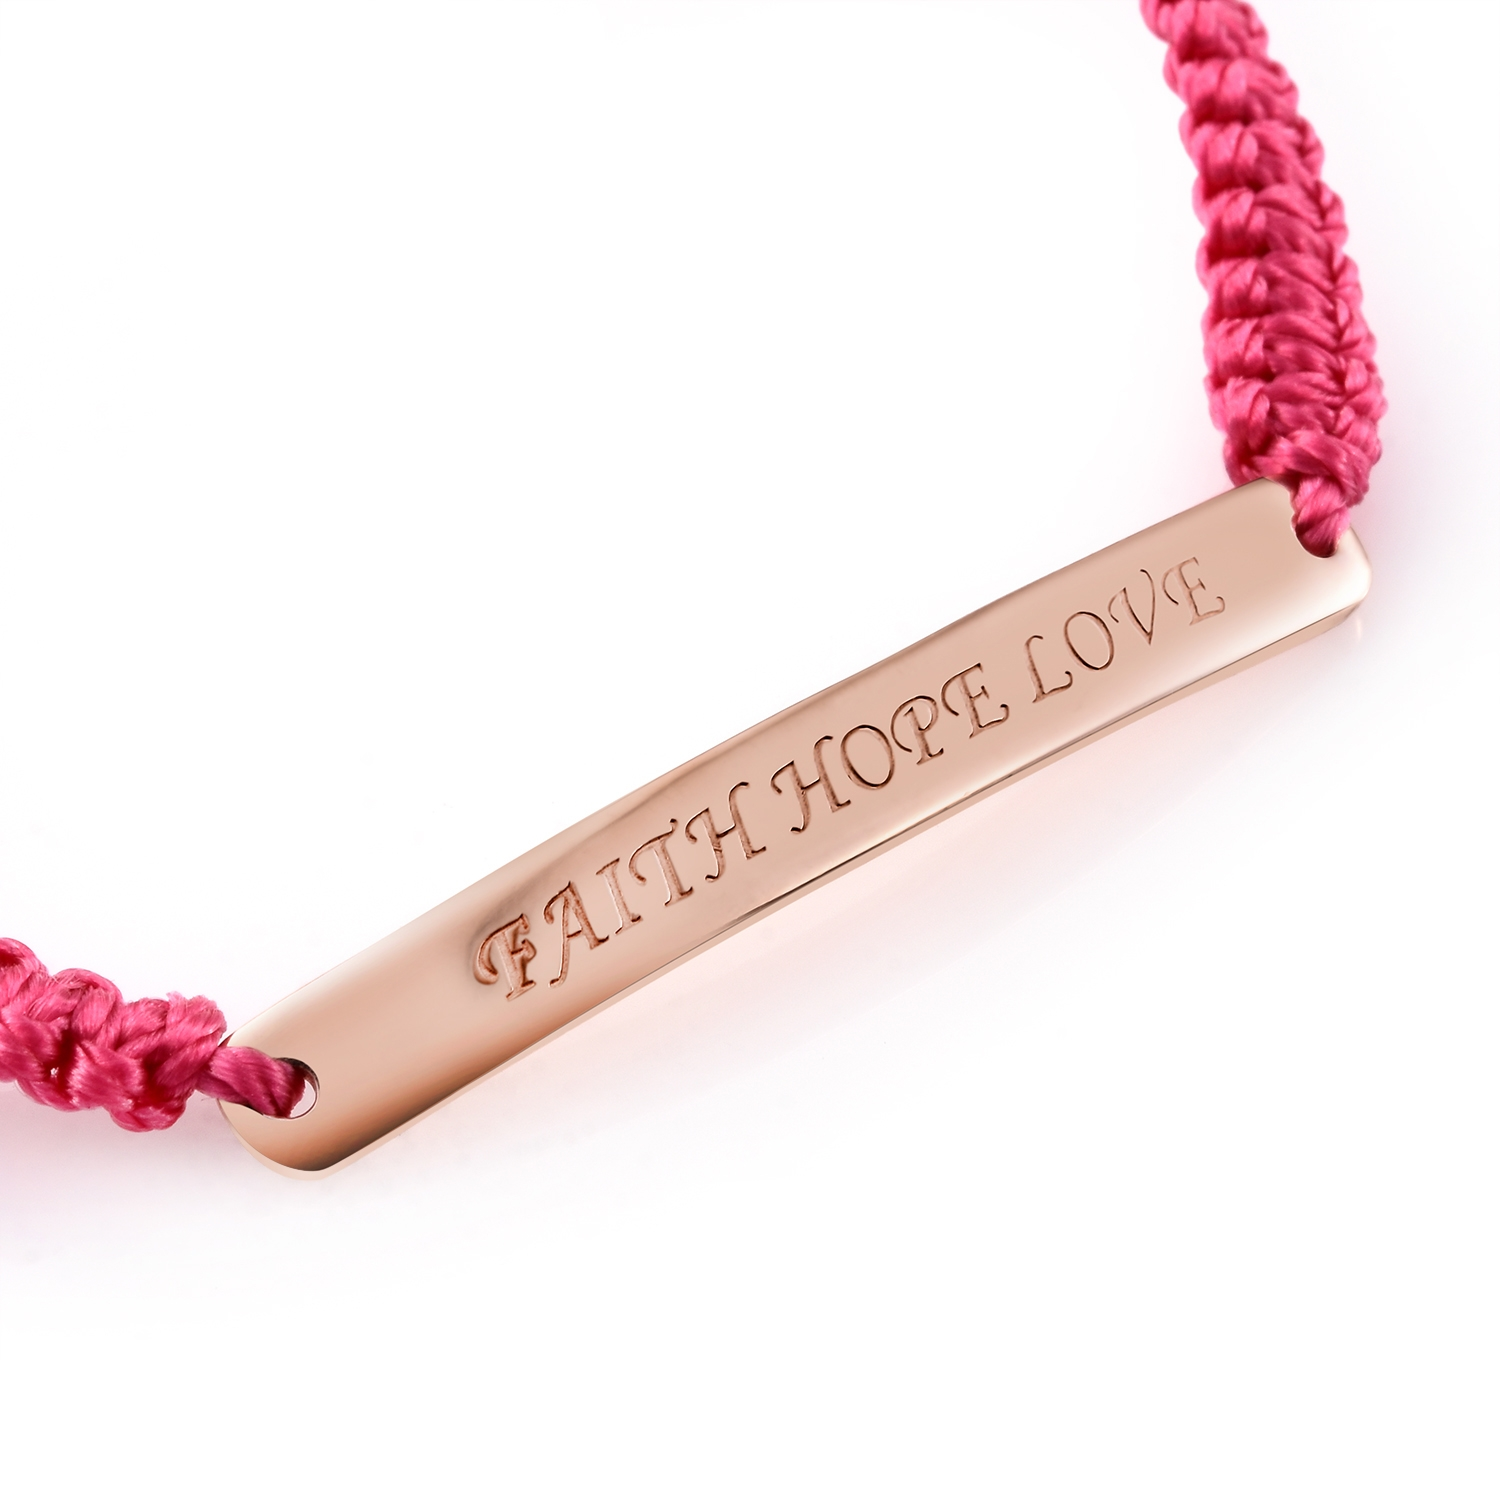 I.D. Band Style 14K RG Over Sterling Silver Faith, Hope, Love Bracelet on Pink Cord - Houzz of DVA Boutique